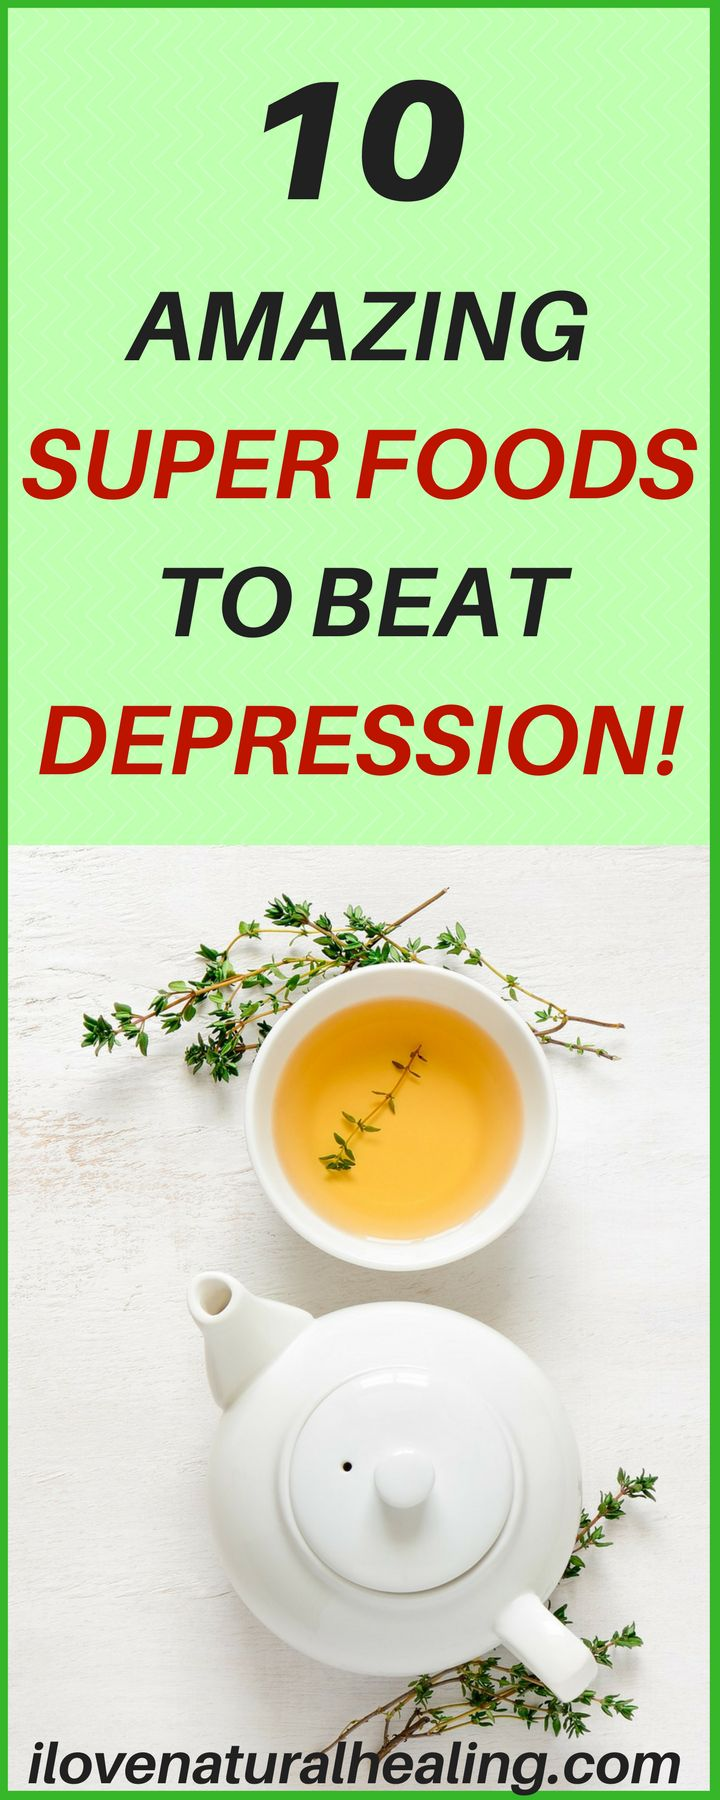 "More than just a bout of the blues, depression isn't a weakness and you can't simply ""snap out"" of it. Depression may require long-term treatment. But don't get discouraged. Here are 10 Amazing Super Foods to Beat Depression!"